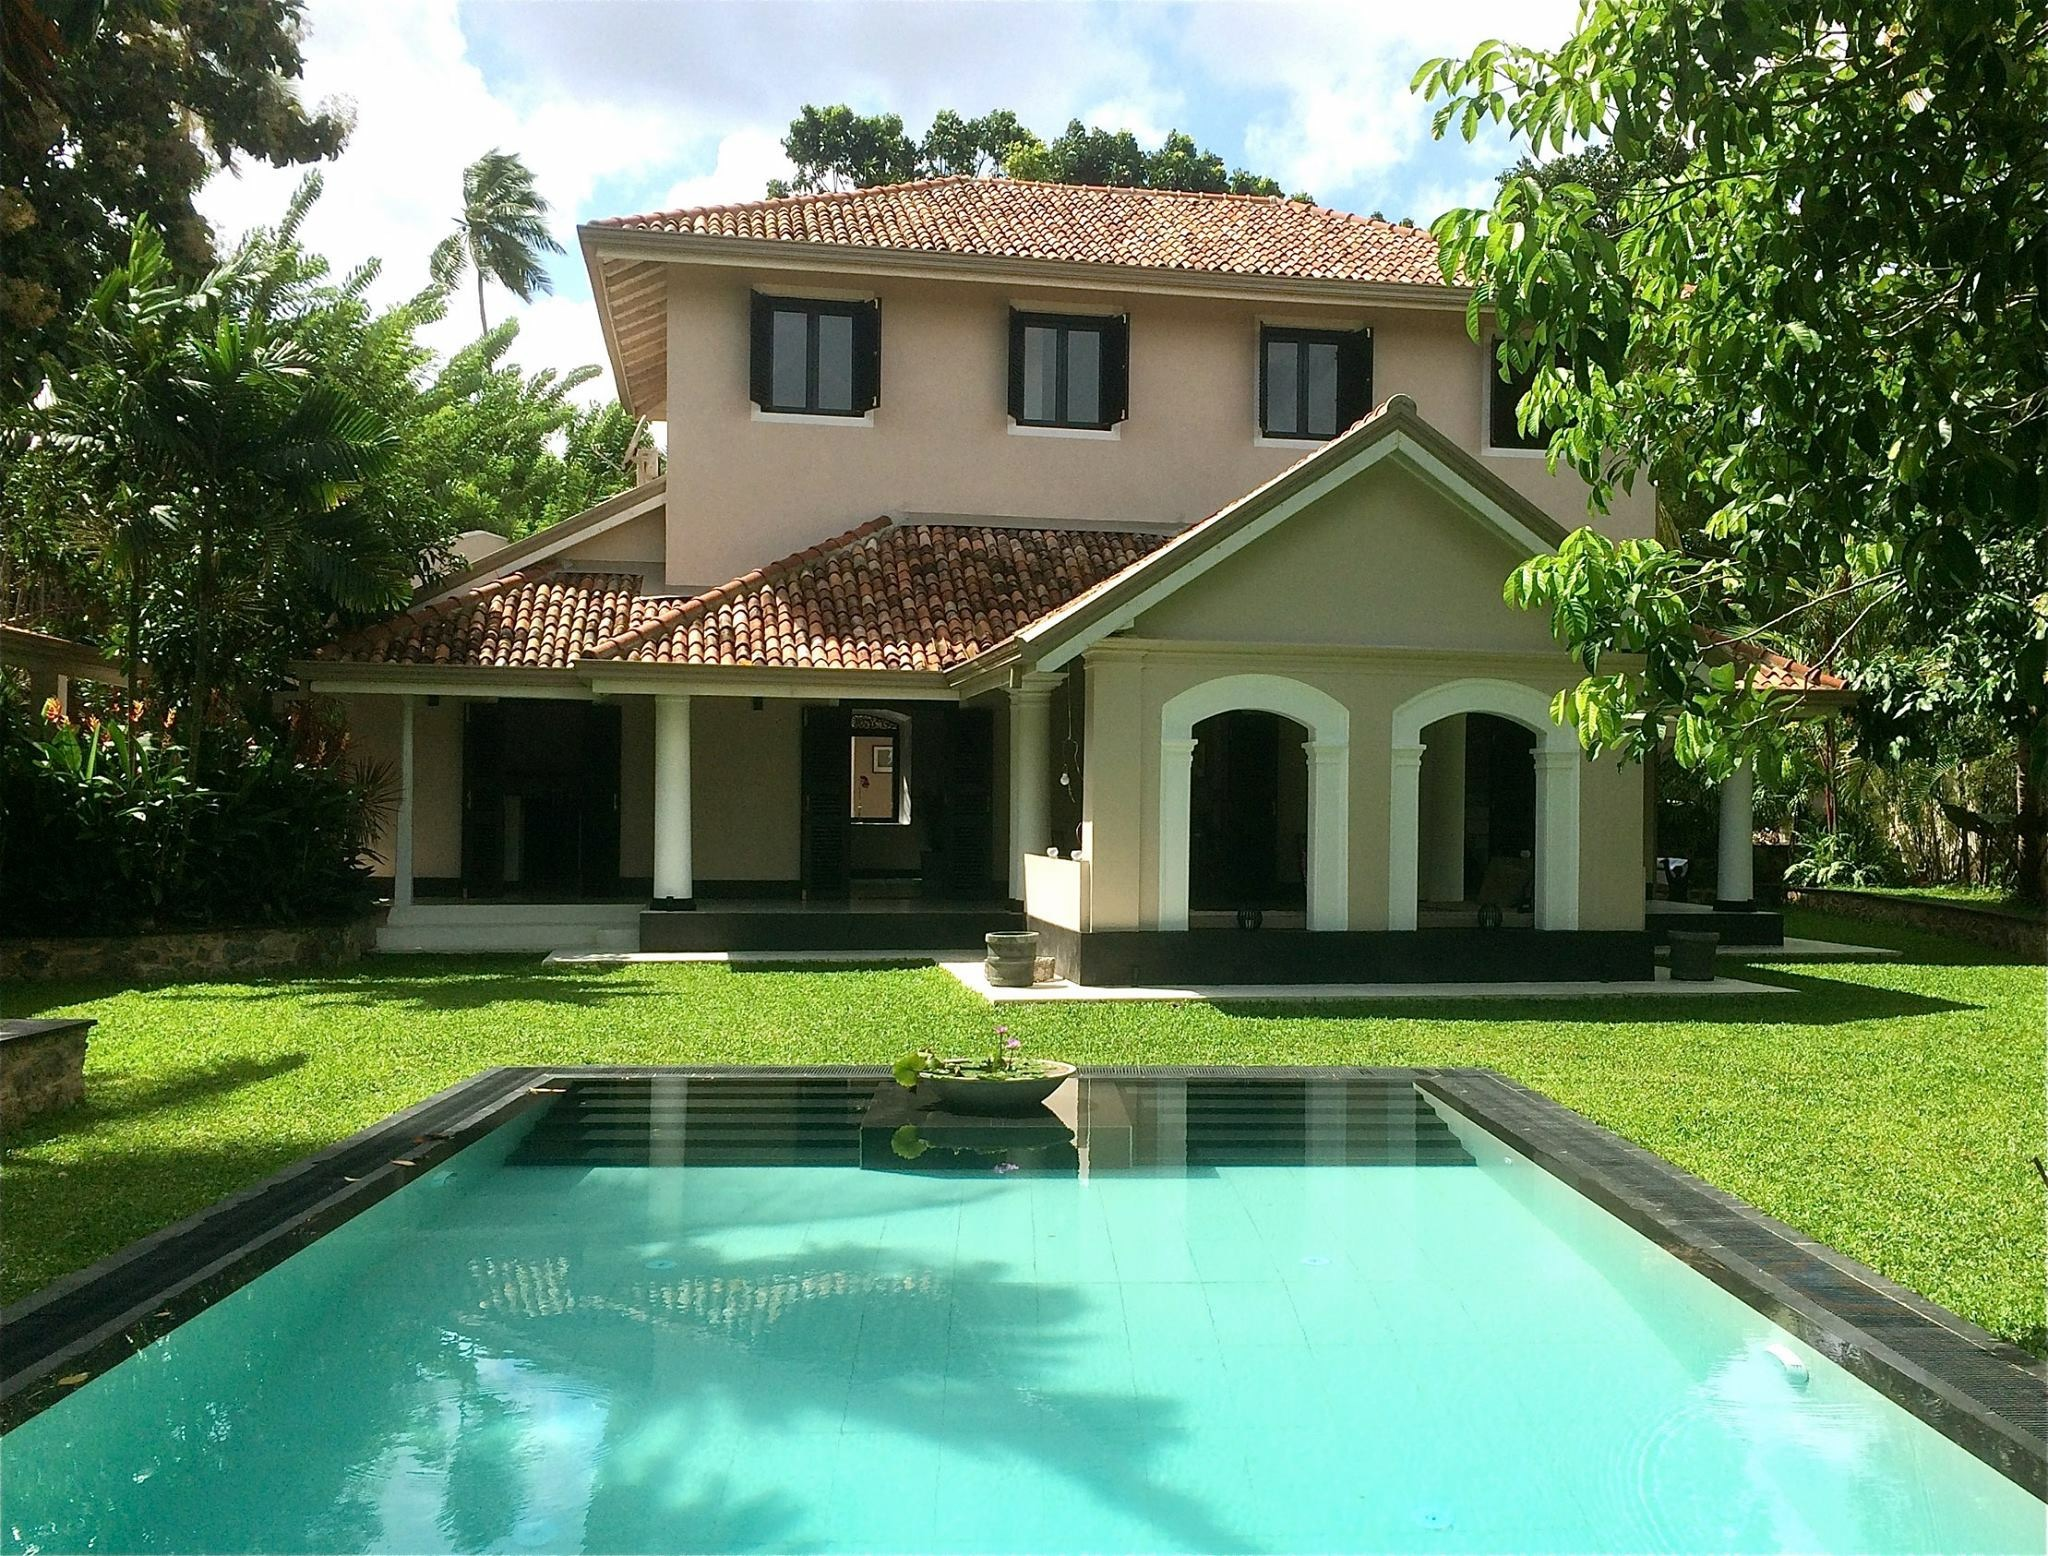 Magnificent restored and renovated antique villa